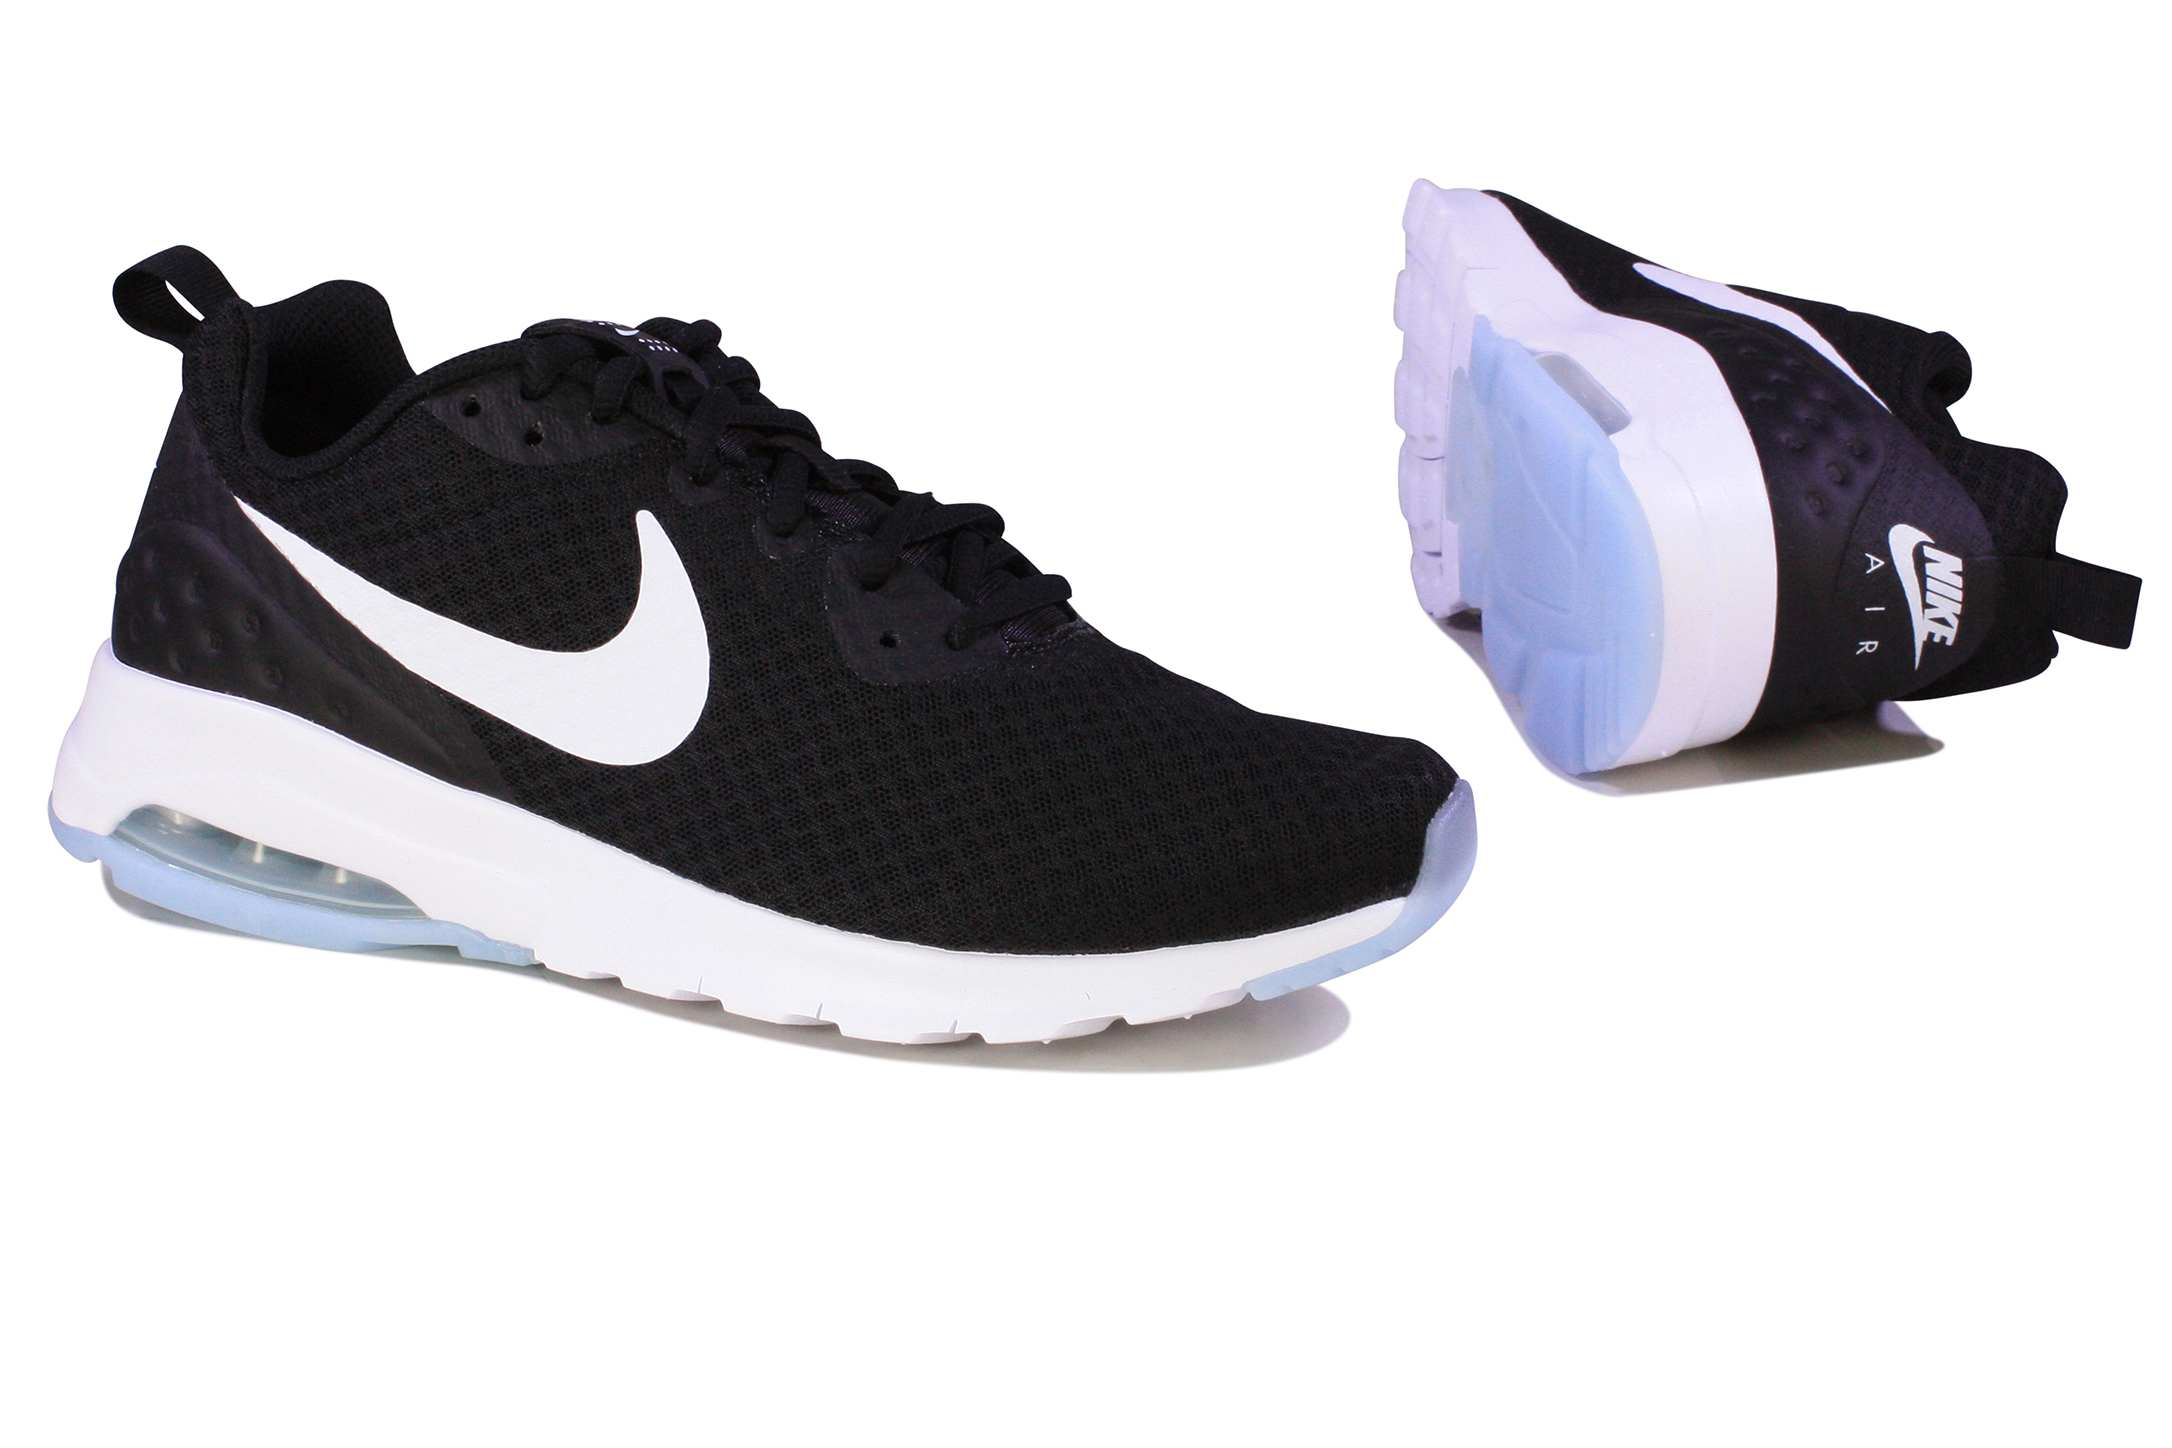 AIR MAX MOTION LW 833260-010